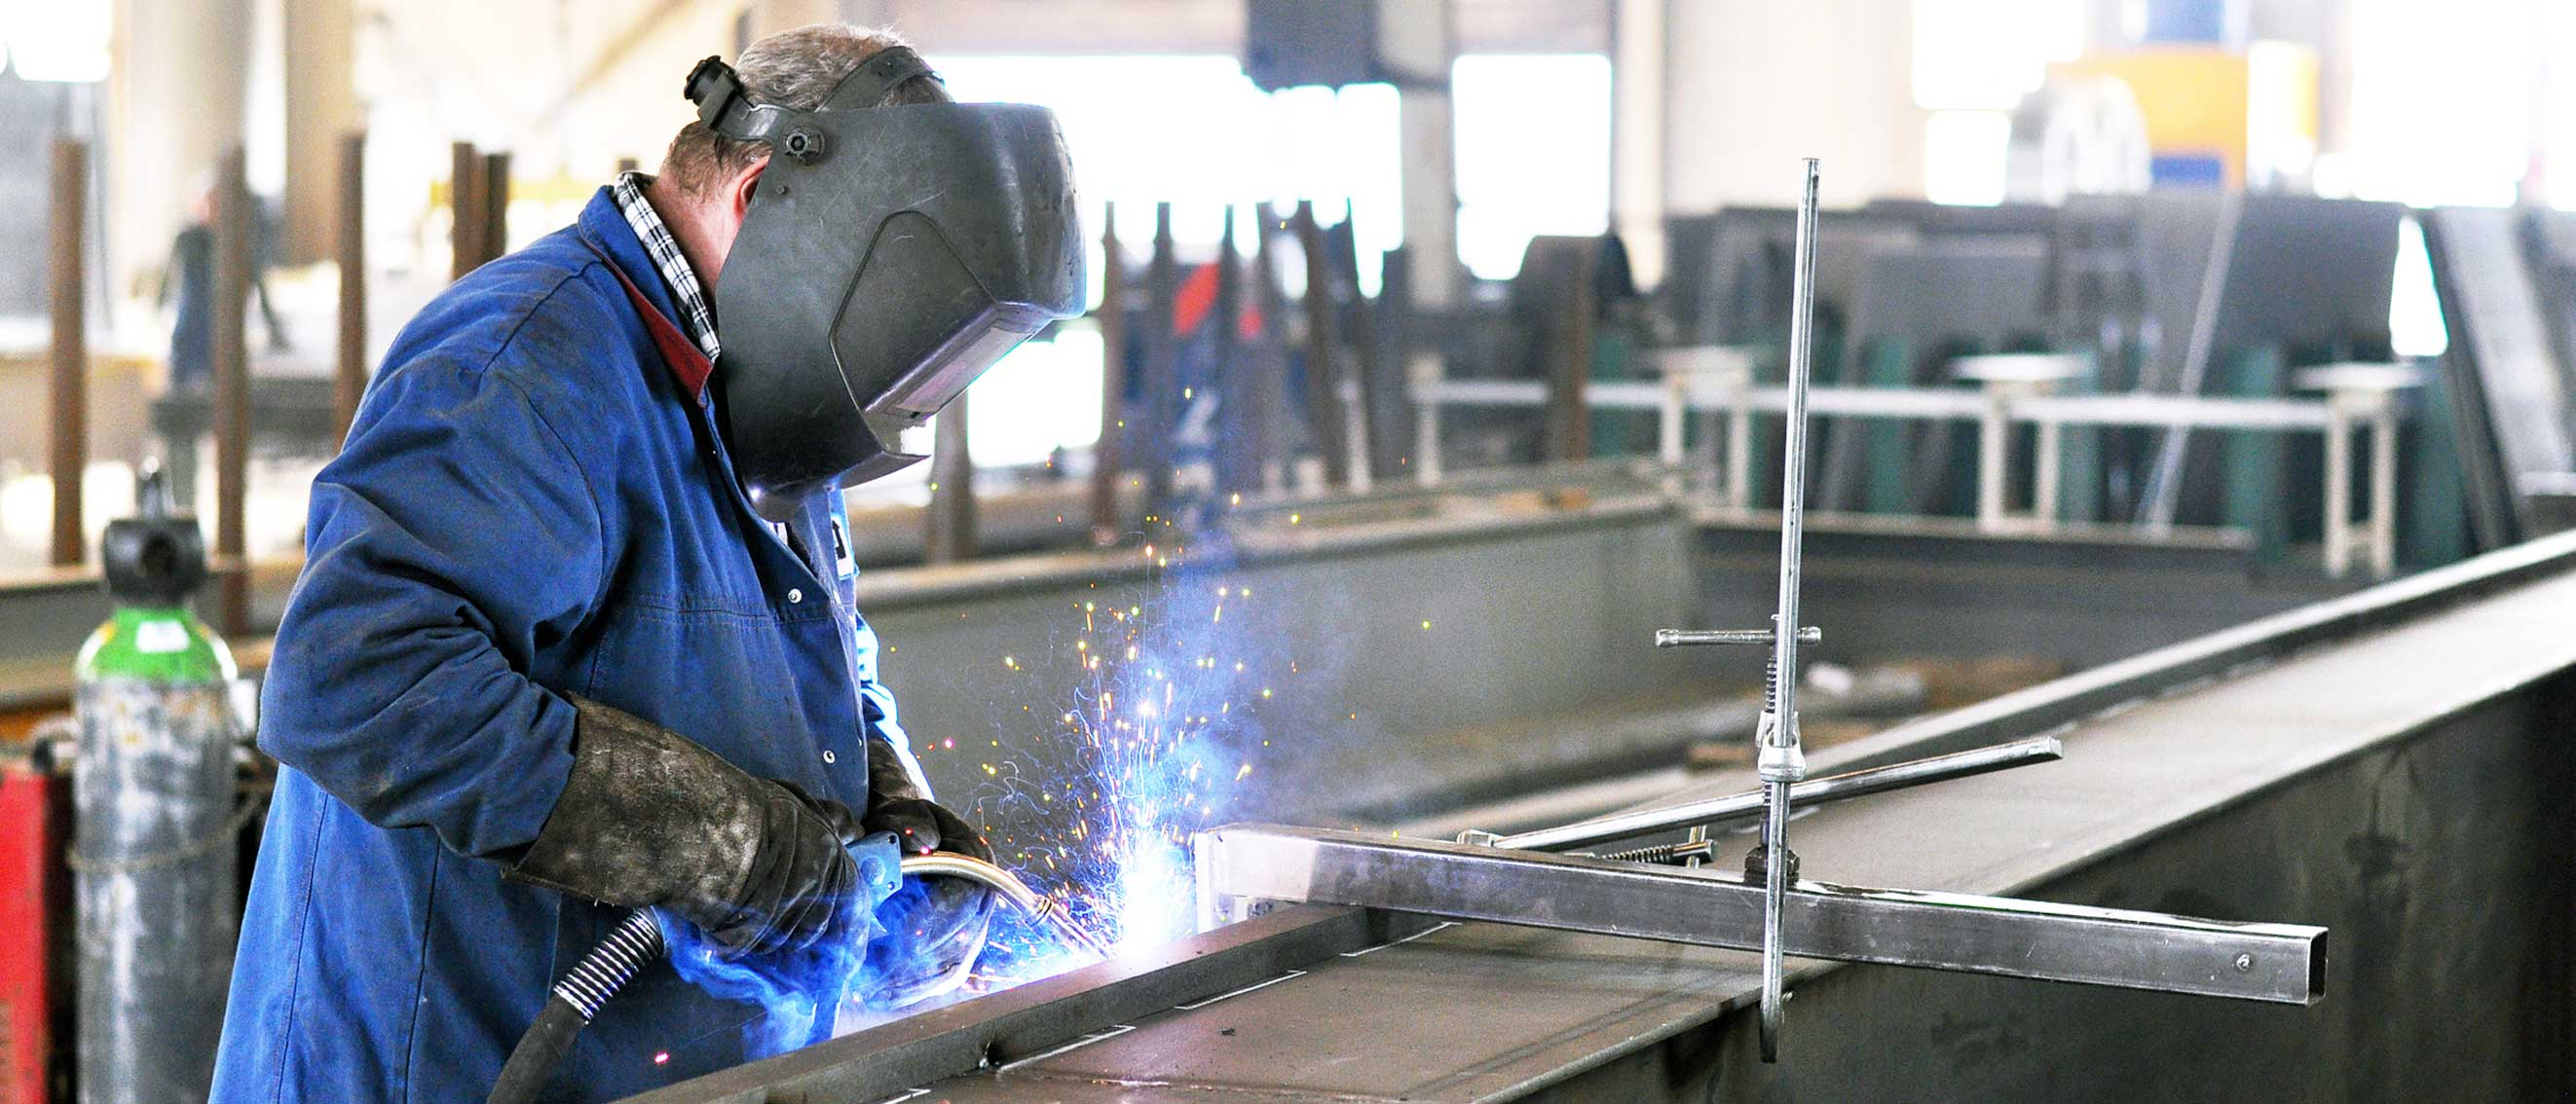 Custom metal fabrication by Emergency Machining Services in Gainsville, GA